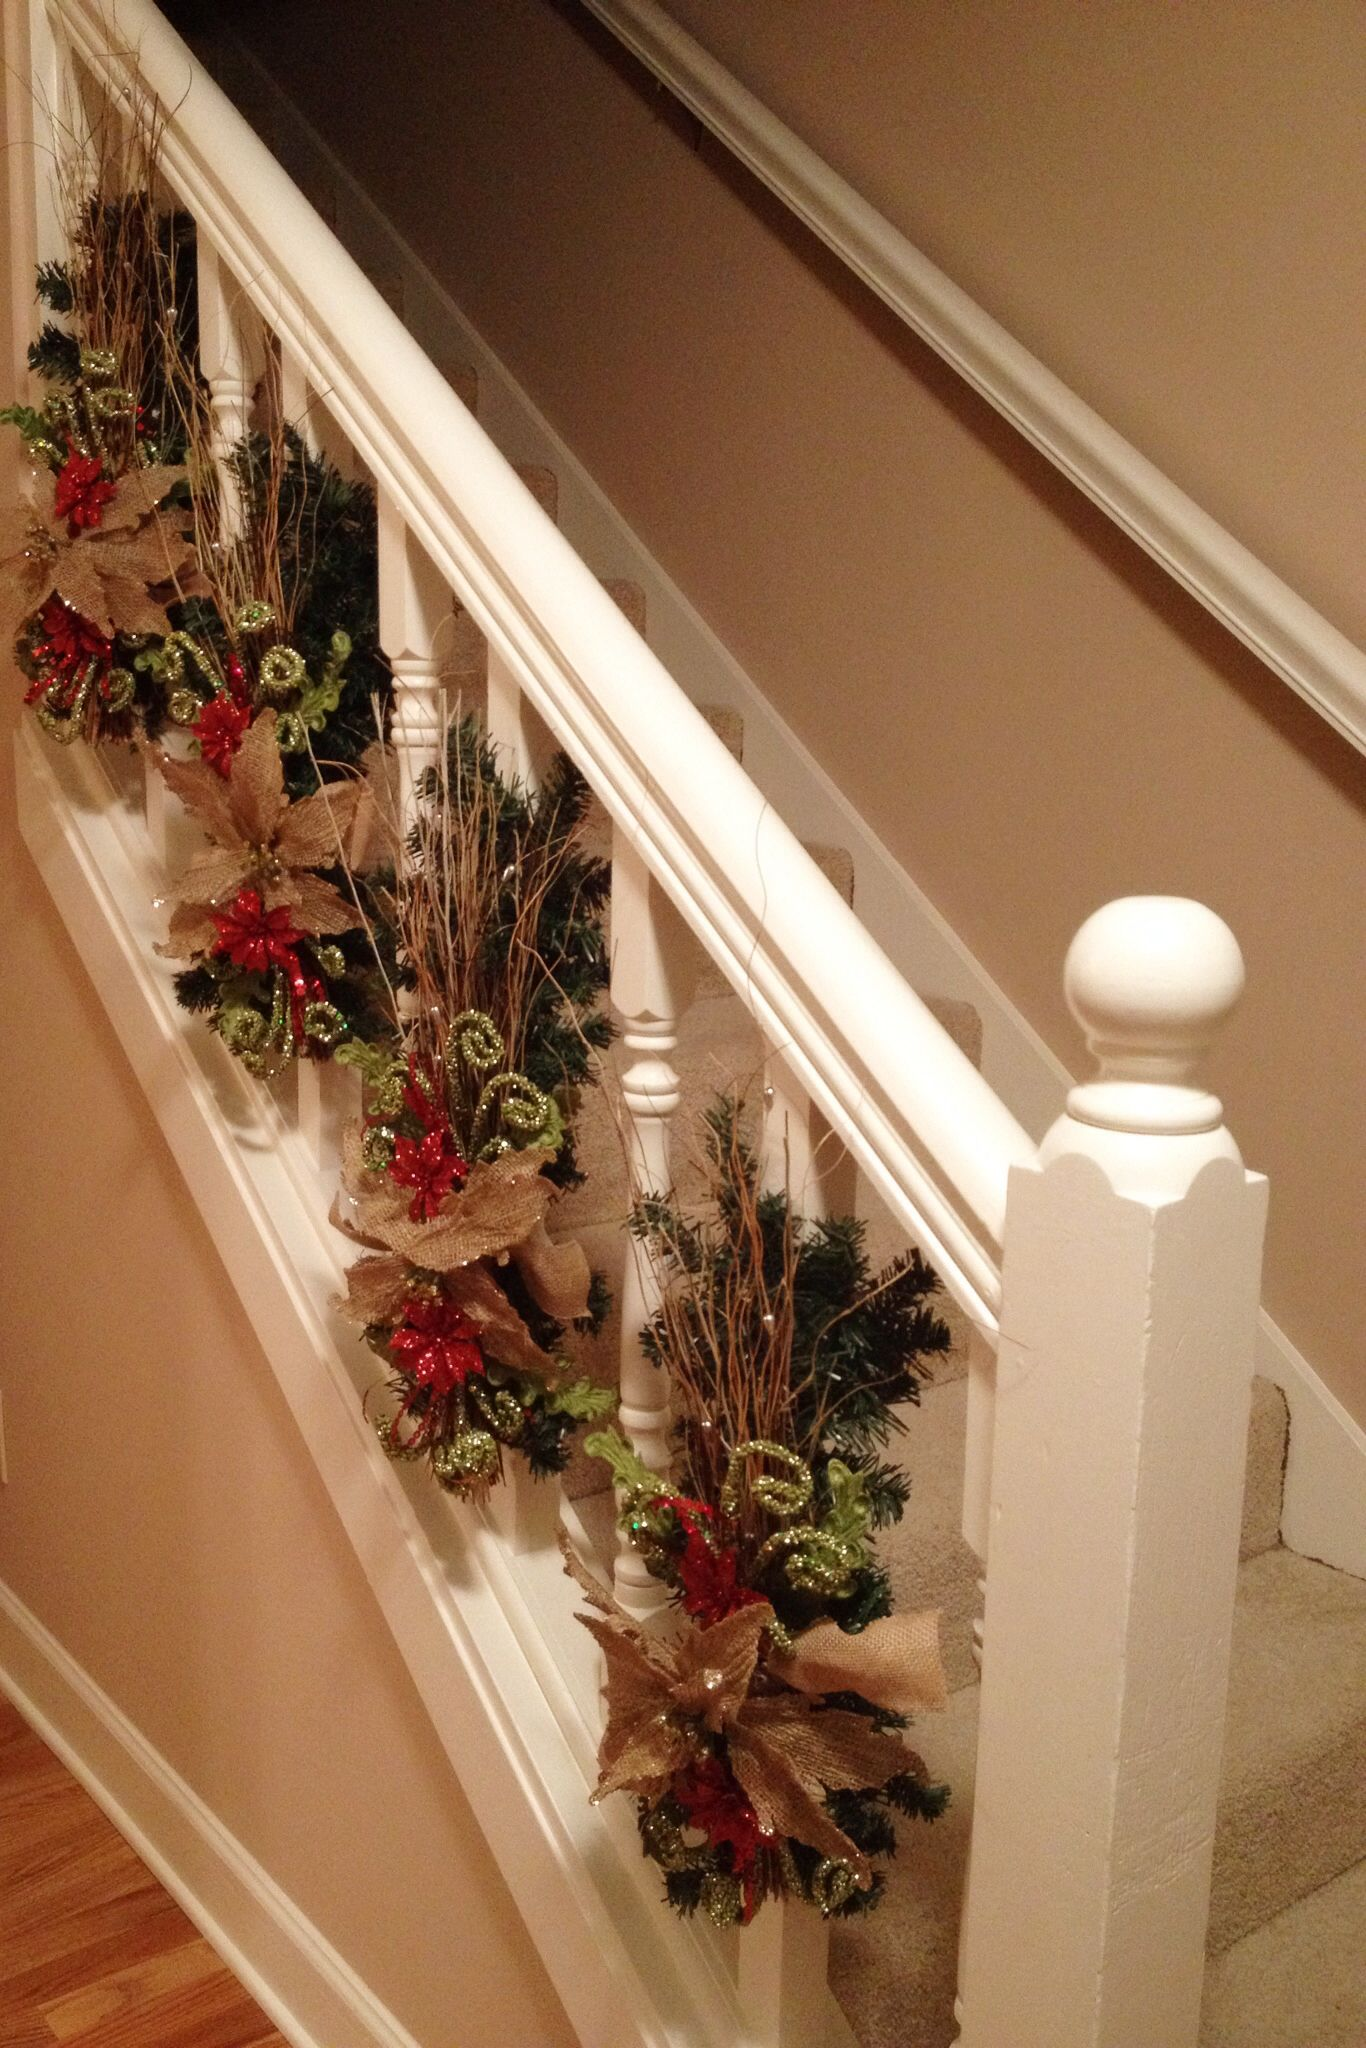 Christmas banister decorations. Different from the